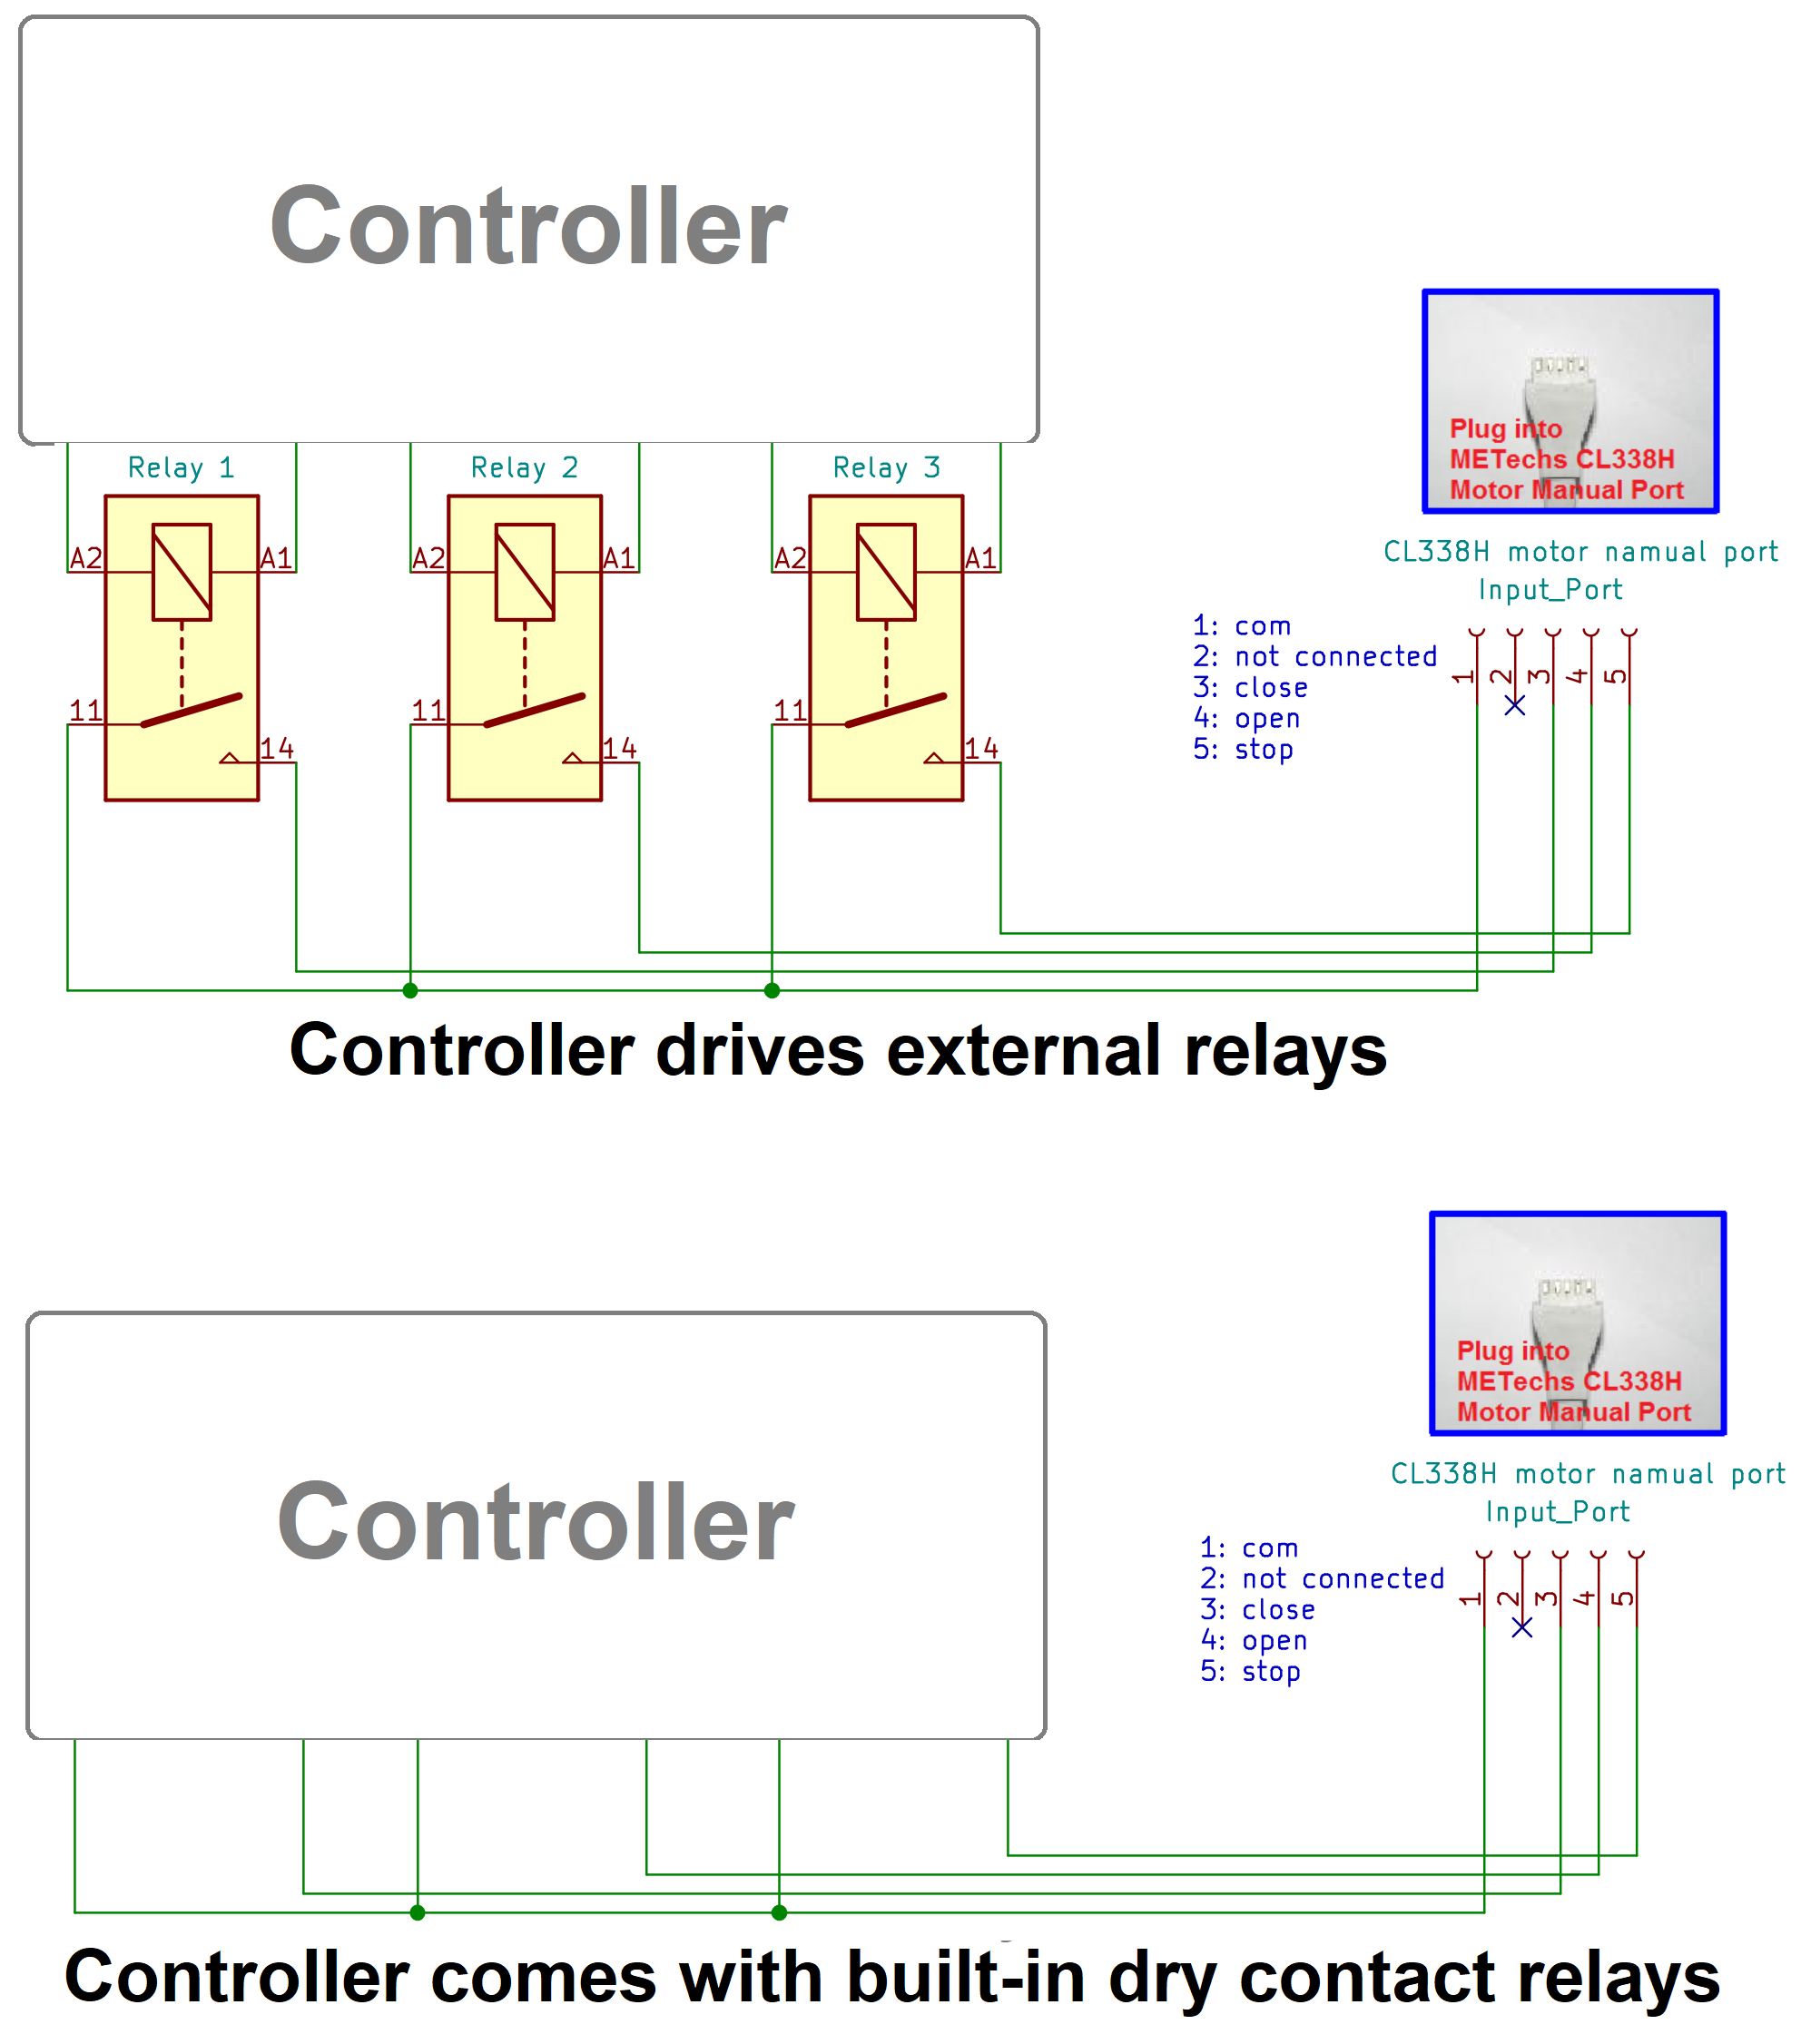 Wiring Diagram For Cl338h Controlled By Third Party